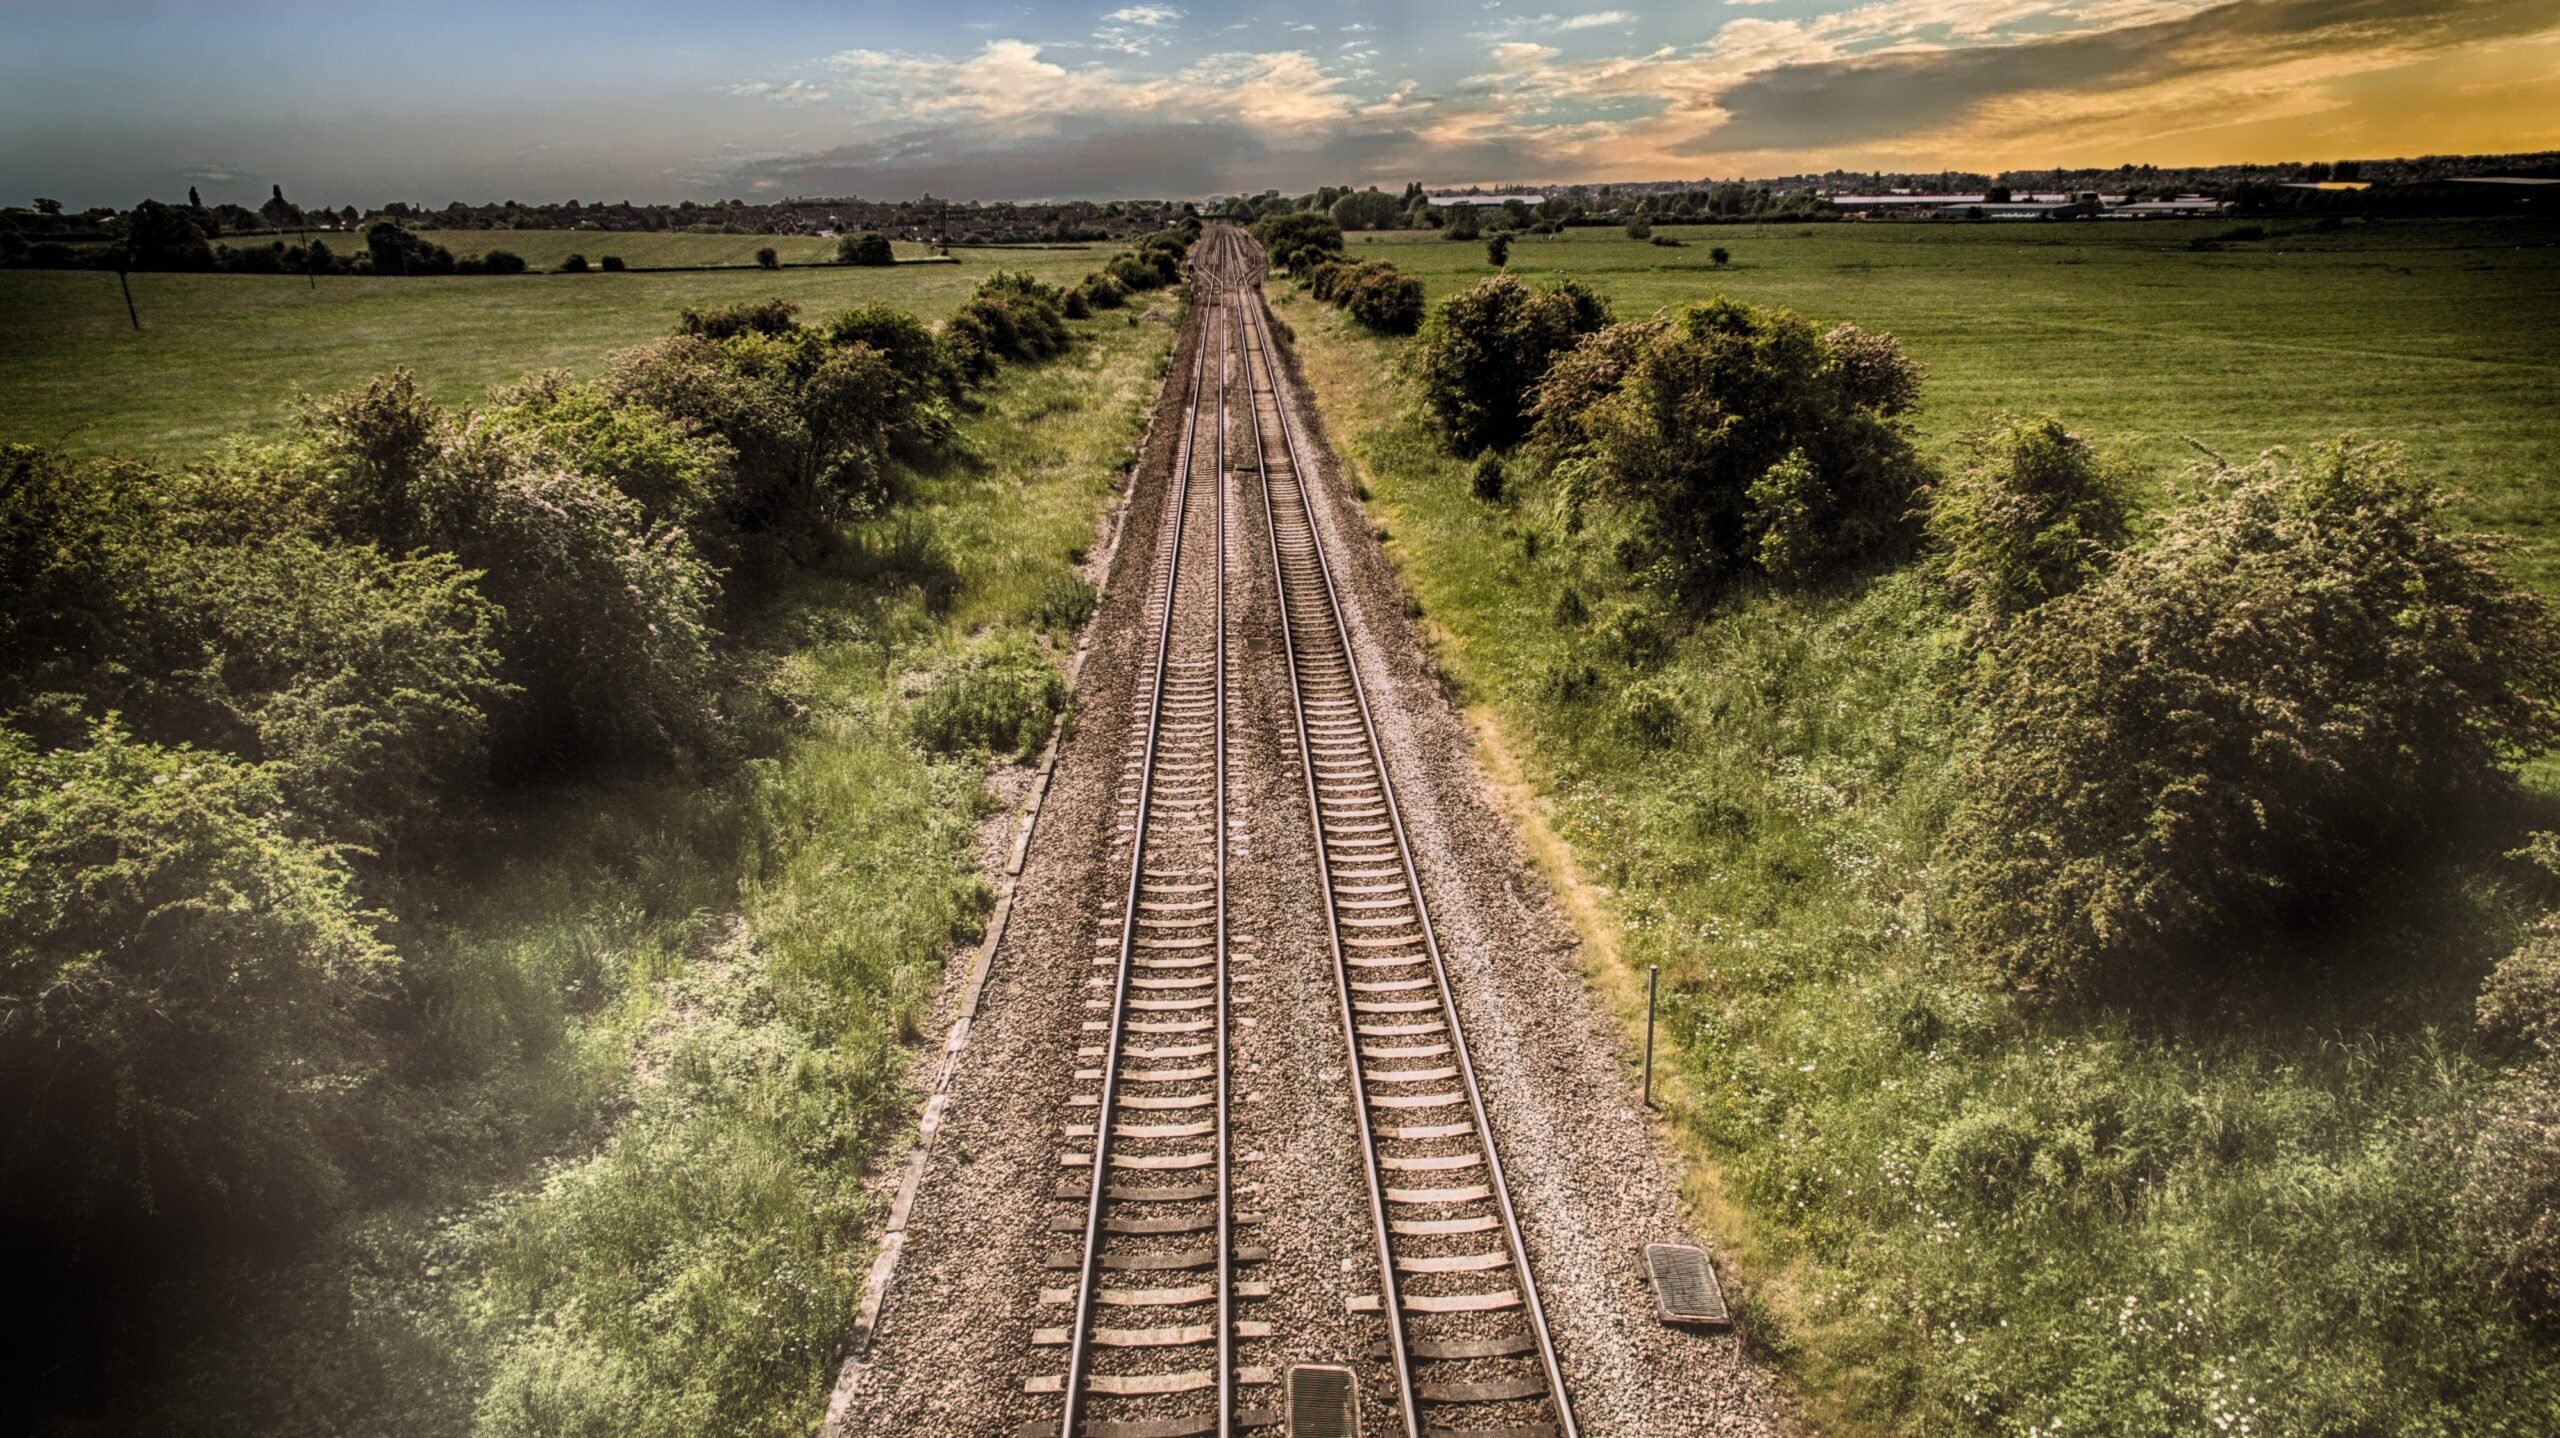 train tracks thinning to vanishing point through landscape with